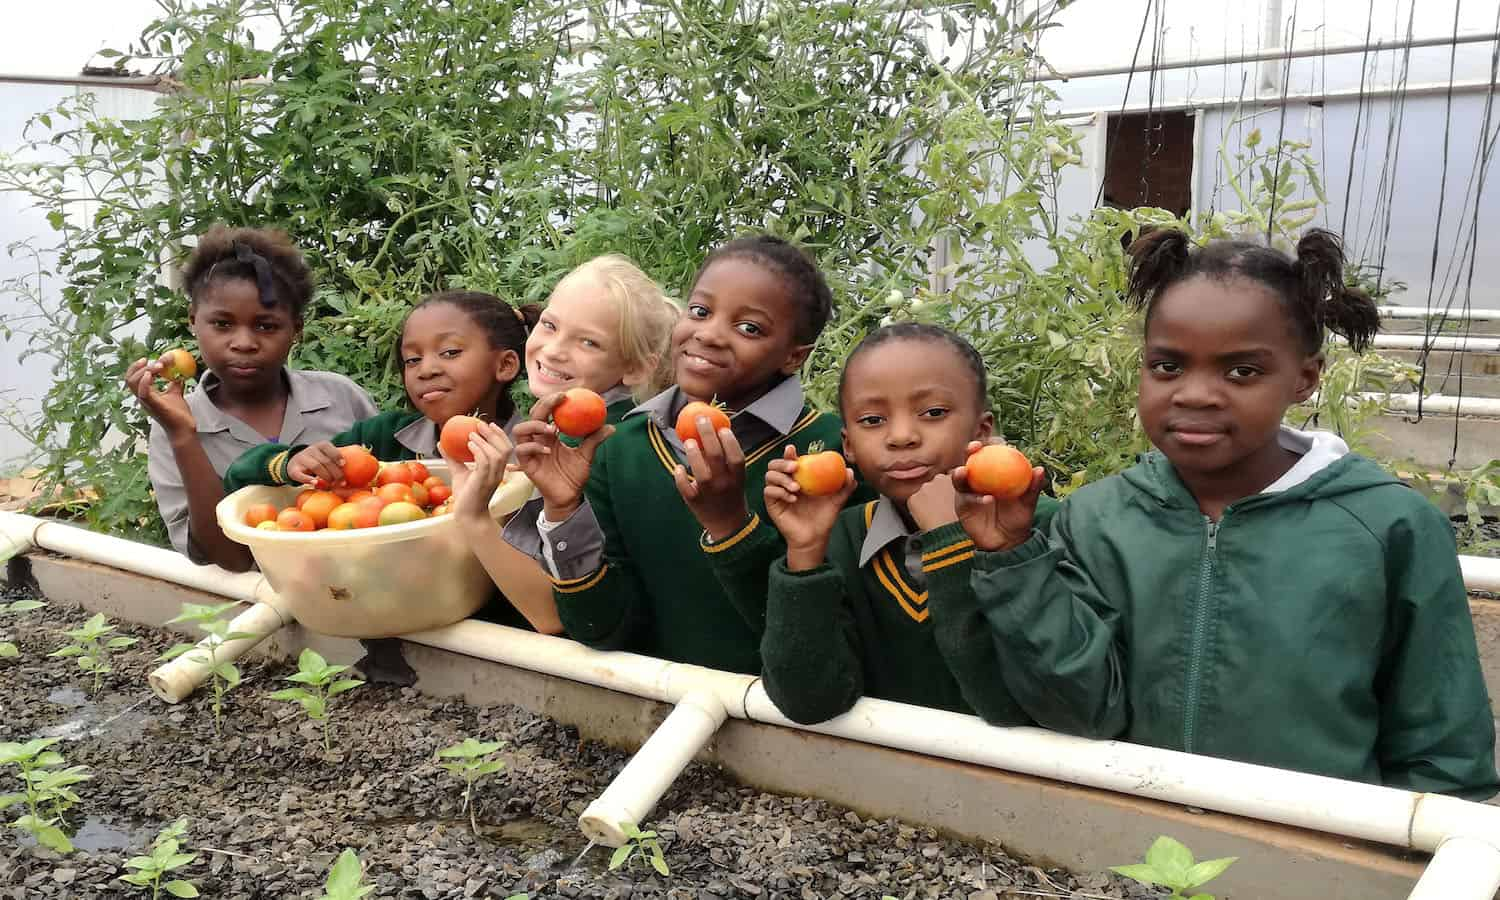 INMED Partnerships for Children is improving food security and creating opportunities for small farmers through their adaptive aquaponics programs.